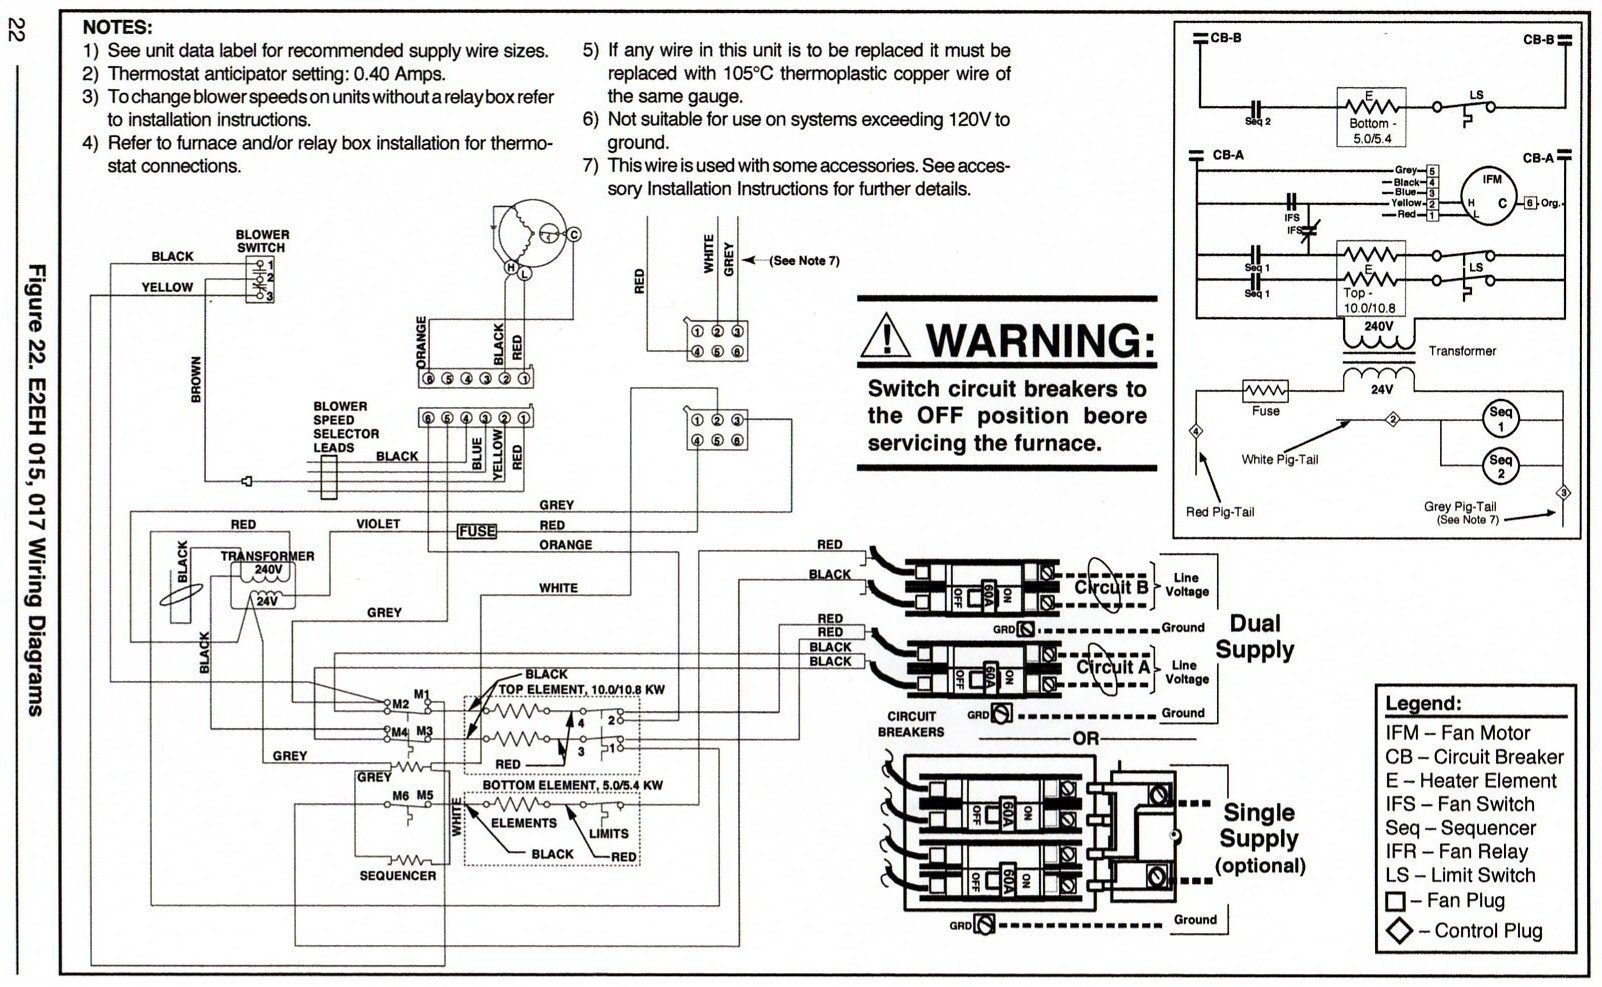 intertherm electric furnace 15kw wiring diagrams wiring nordyne e2eb 015ha wiring-diagram intertherm electric furnace 15kw wiring diagrams #3